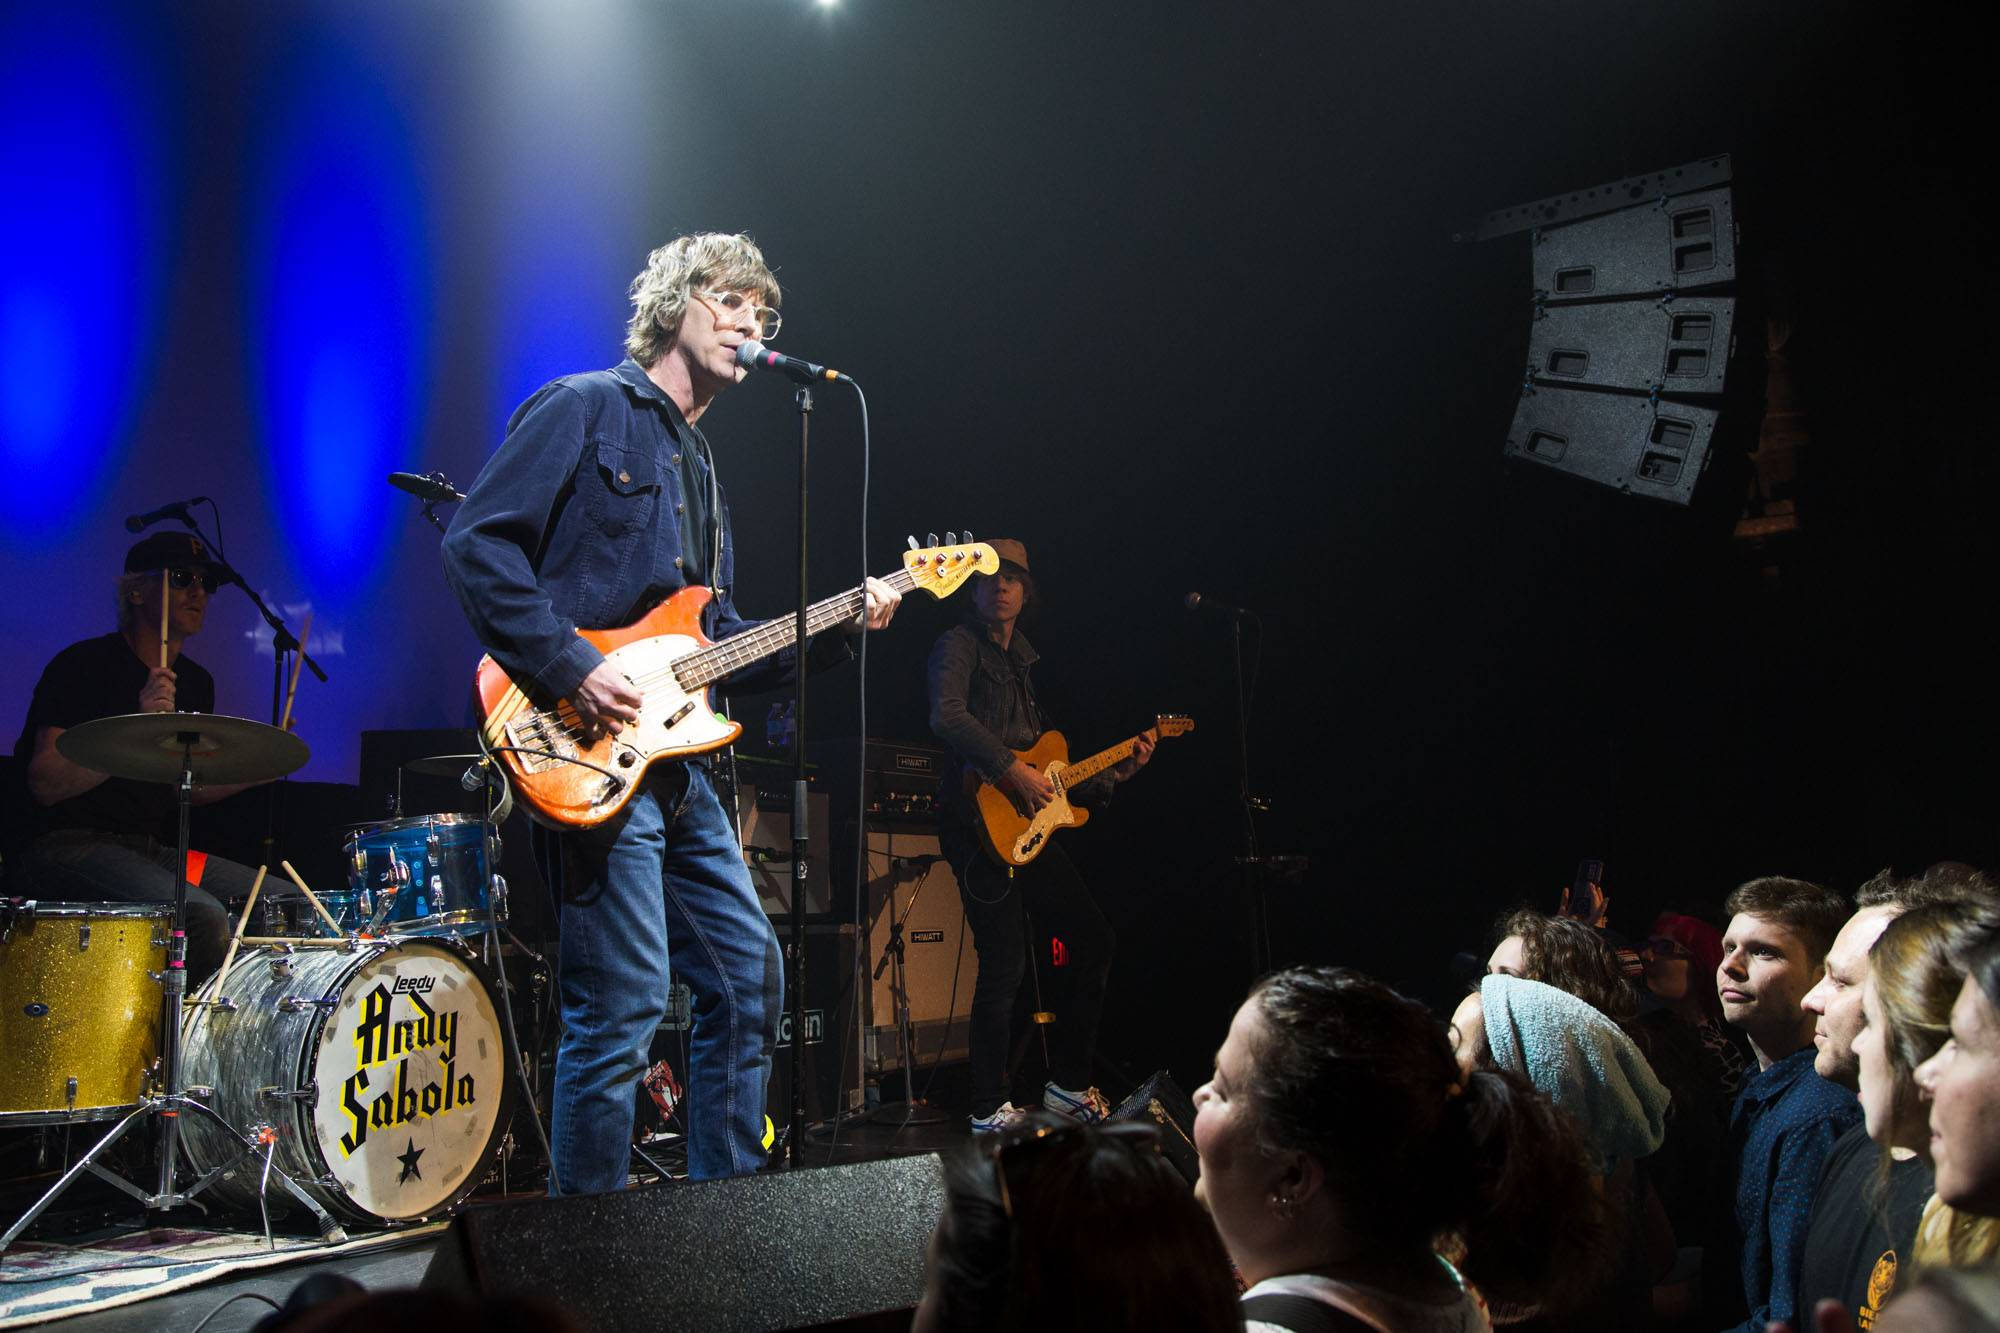 Sloan at the Imperial Theatre, Vancouver, Apr. 20 2016. Kirk Chantraine photo.